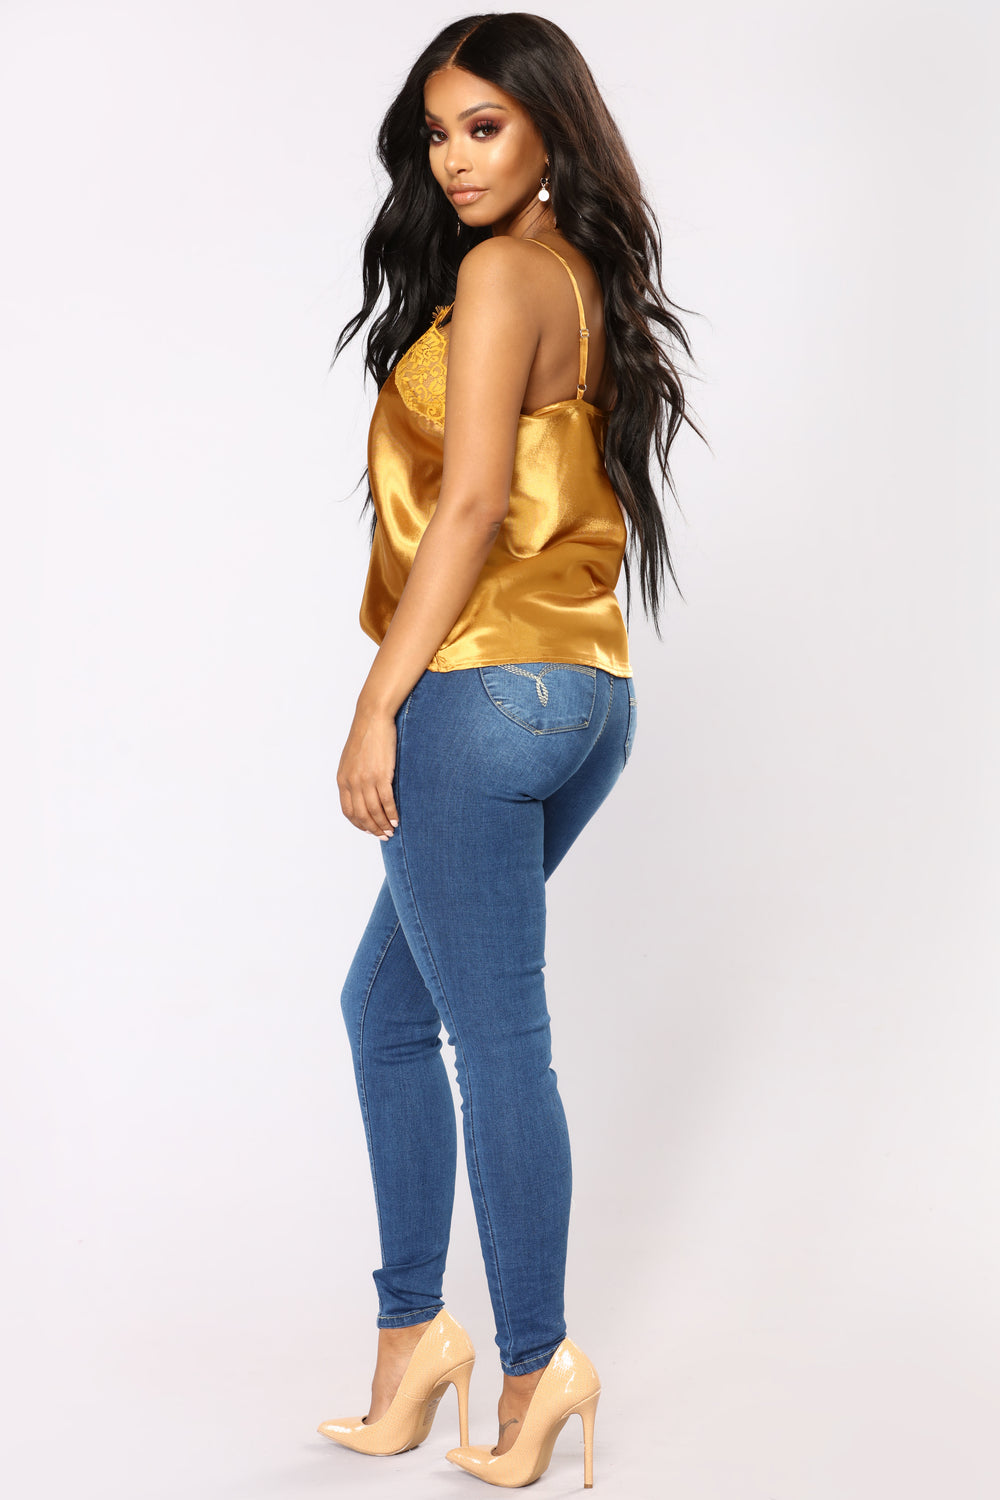 Real Talk Booty Lifting Jeans - Medium Blue Wash